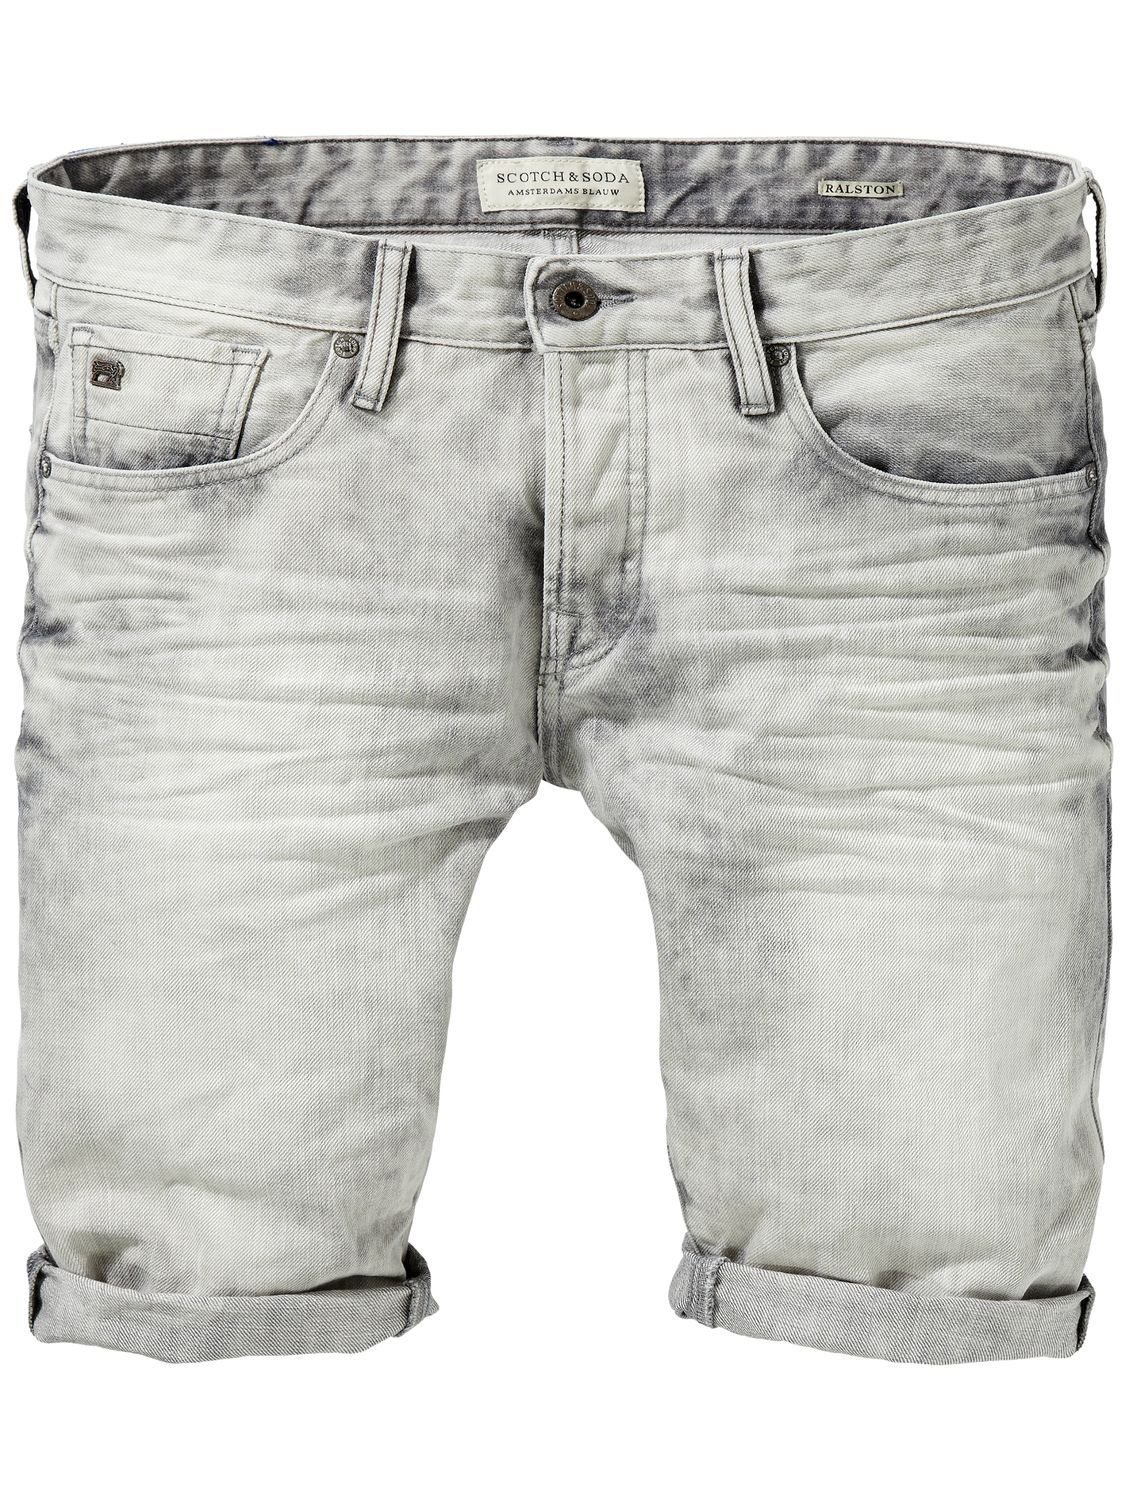 Pin On Denim Shorts Outfit